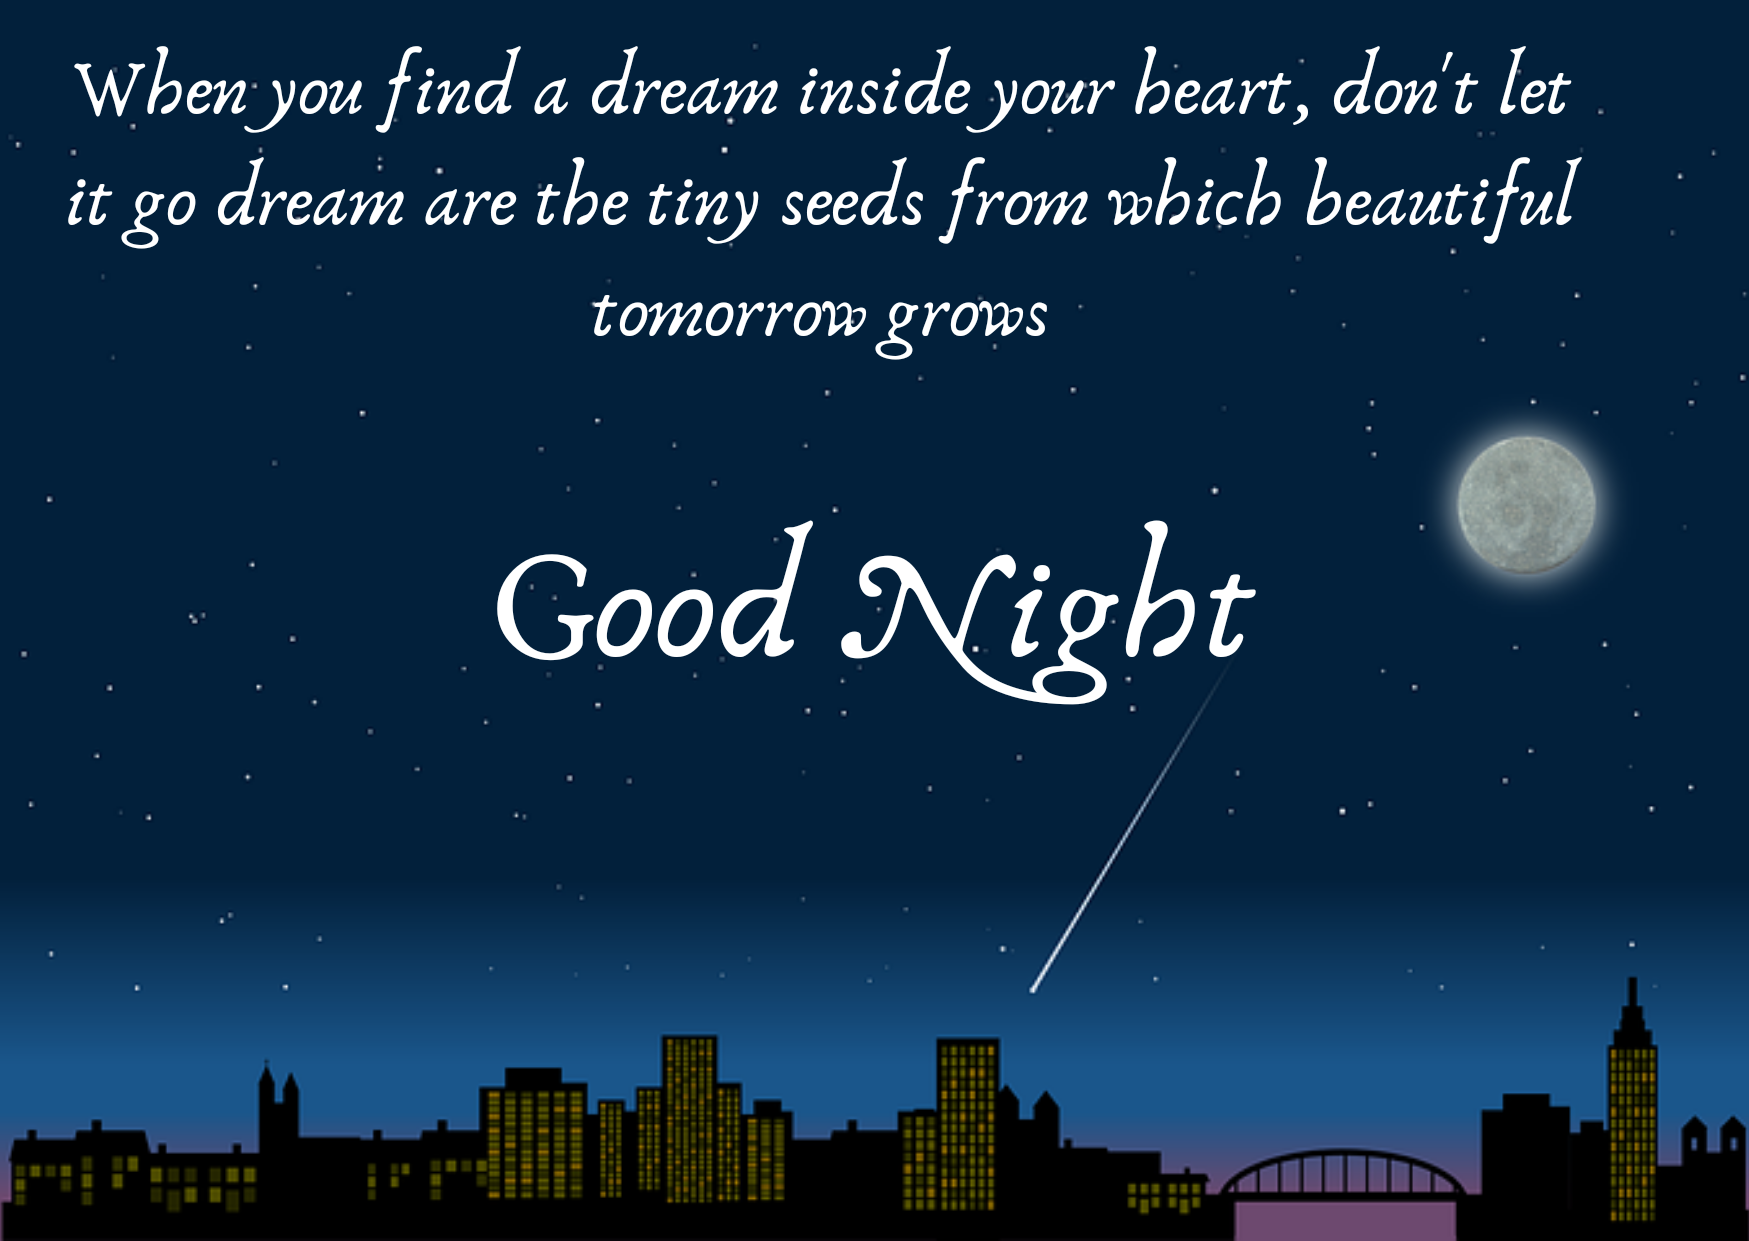 Good night status images wishes wallpaper,Best Beautiful Good Night English status, Good Night wishes massage, Good Night Images Picture, Photo, Quotes,